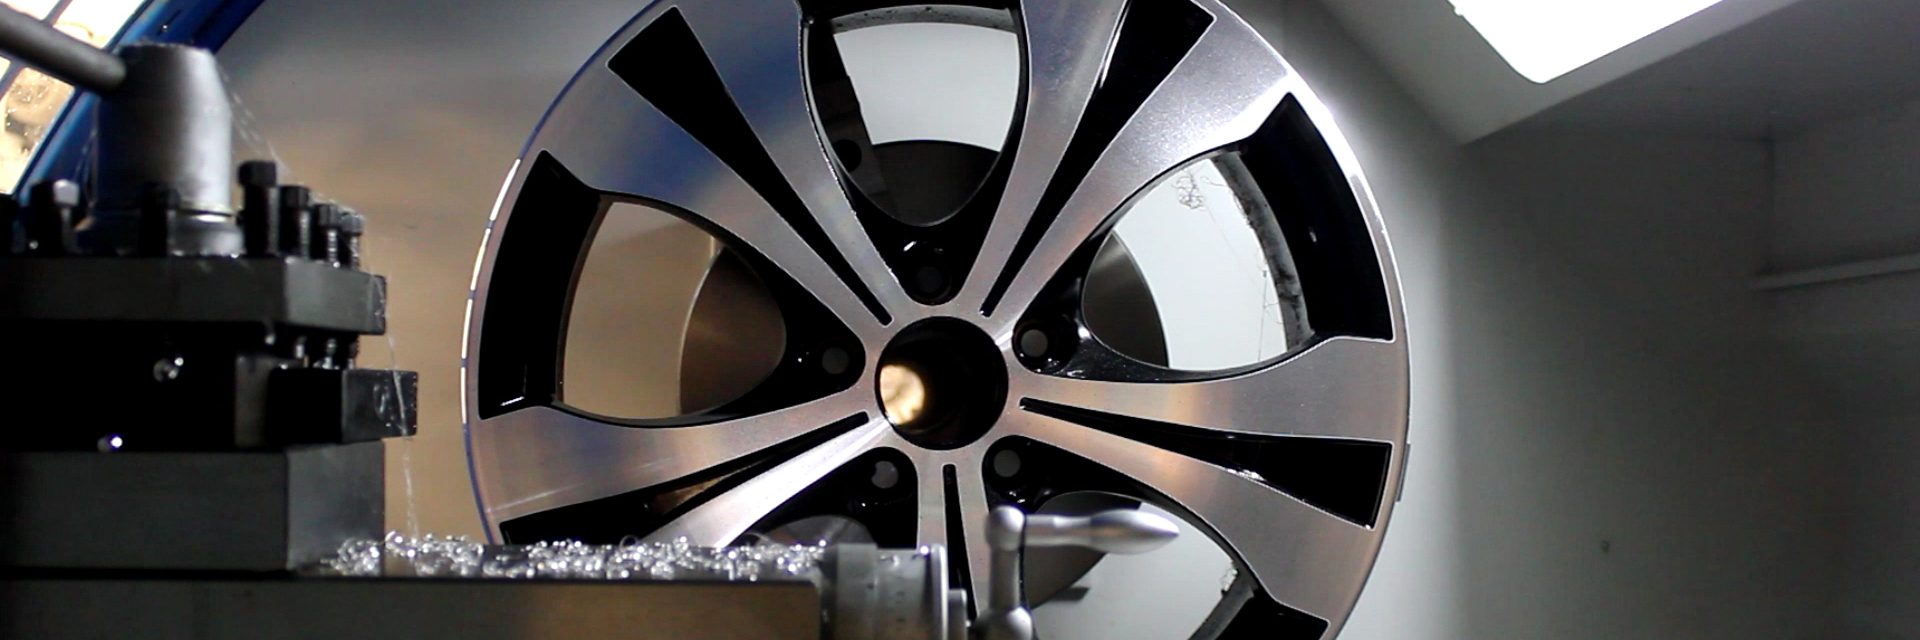 Ayce Systems CNC Lathe diamond cut alloy wheel